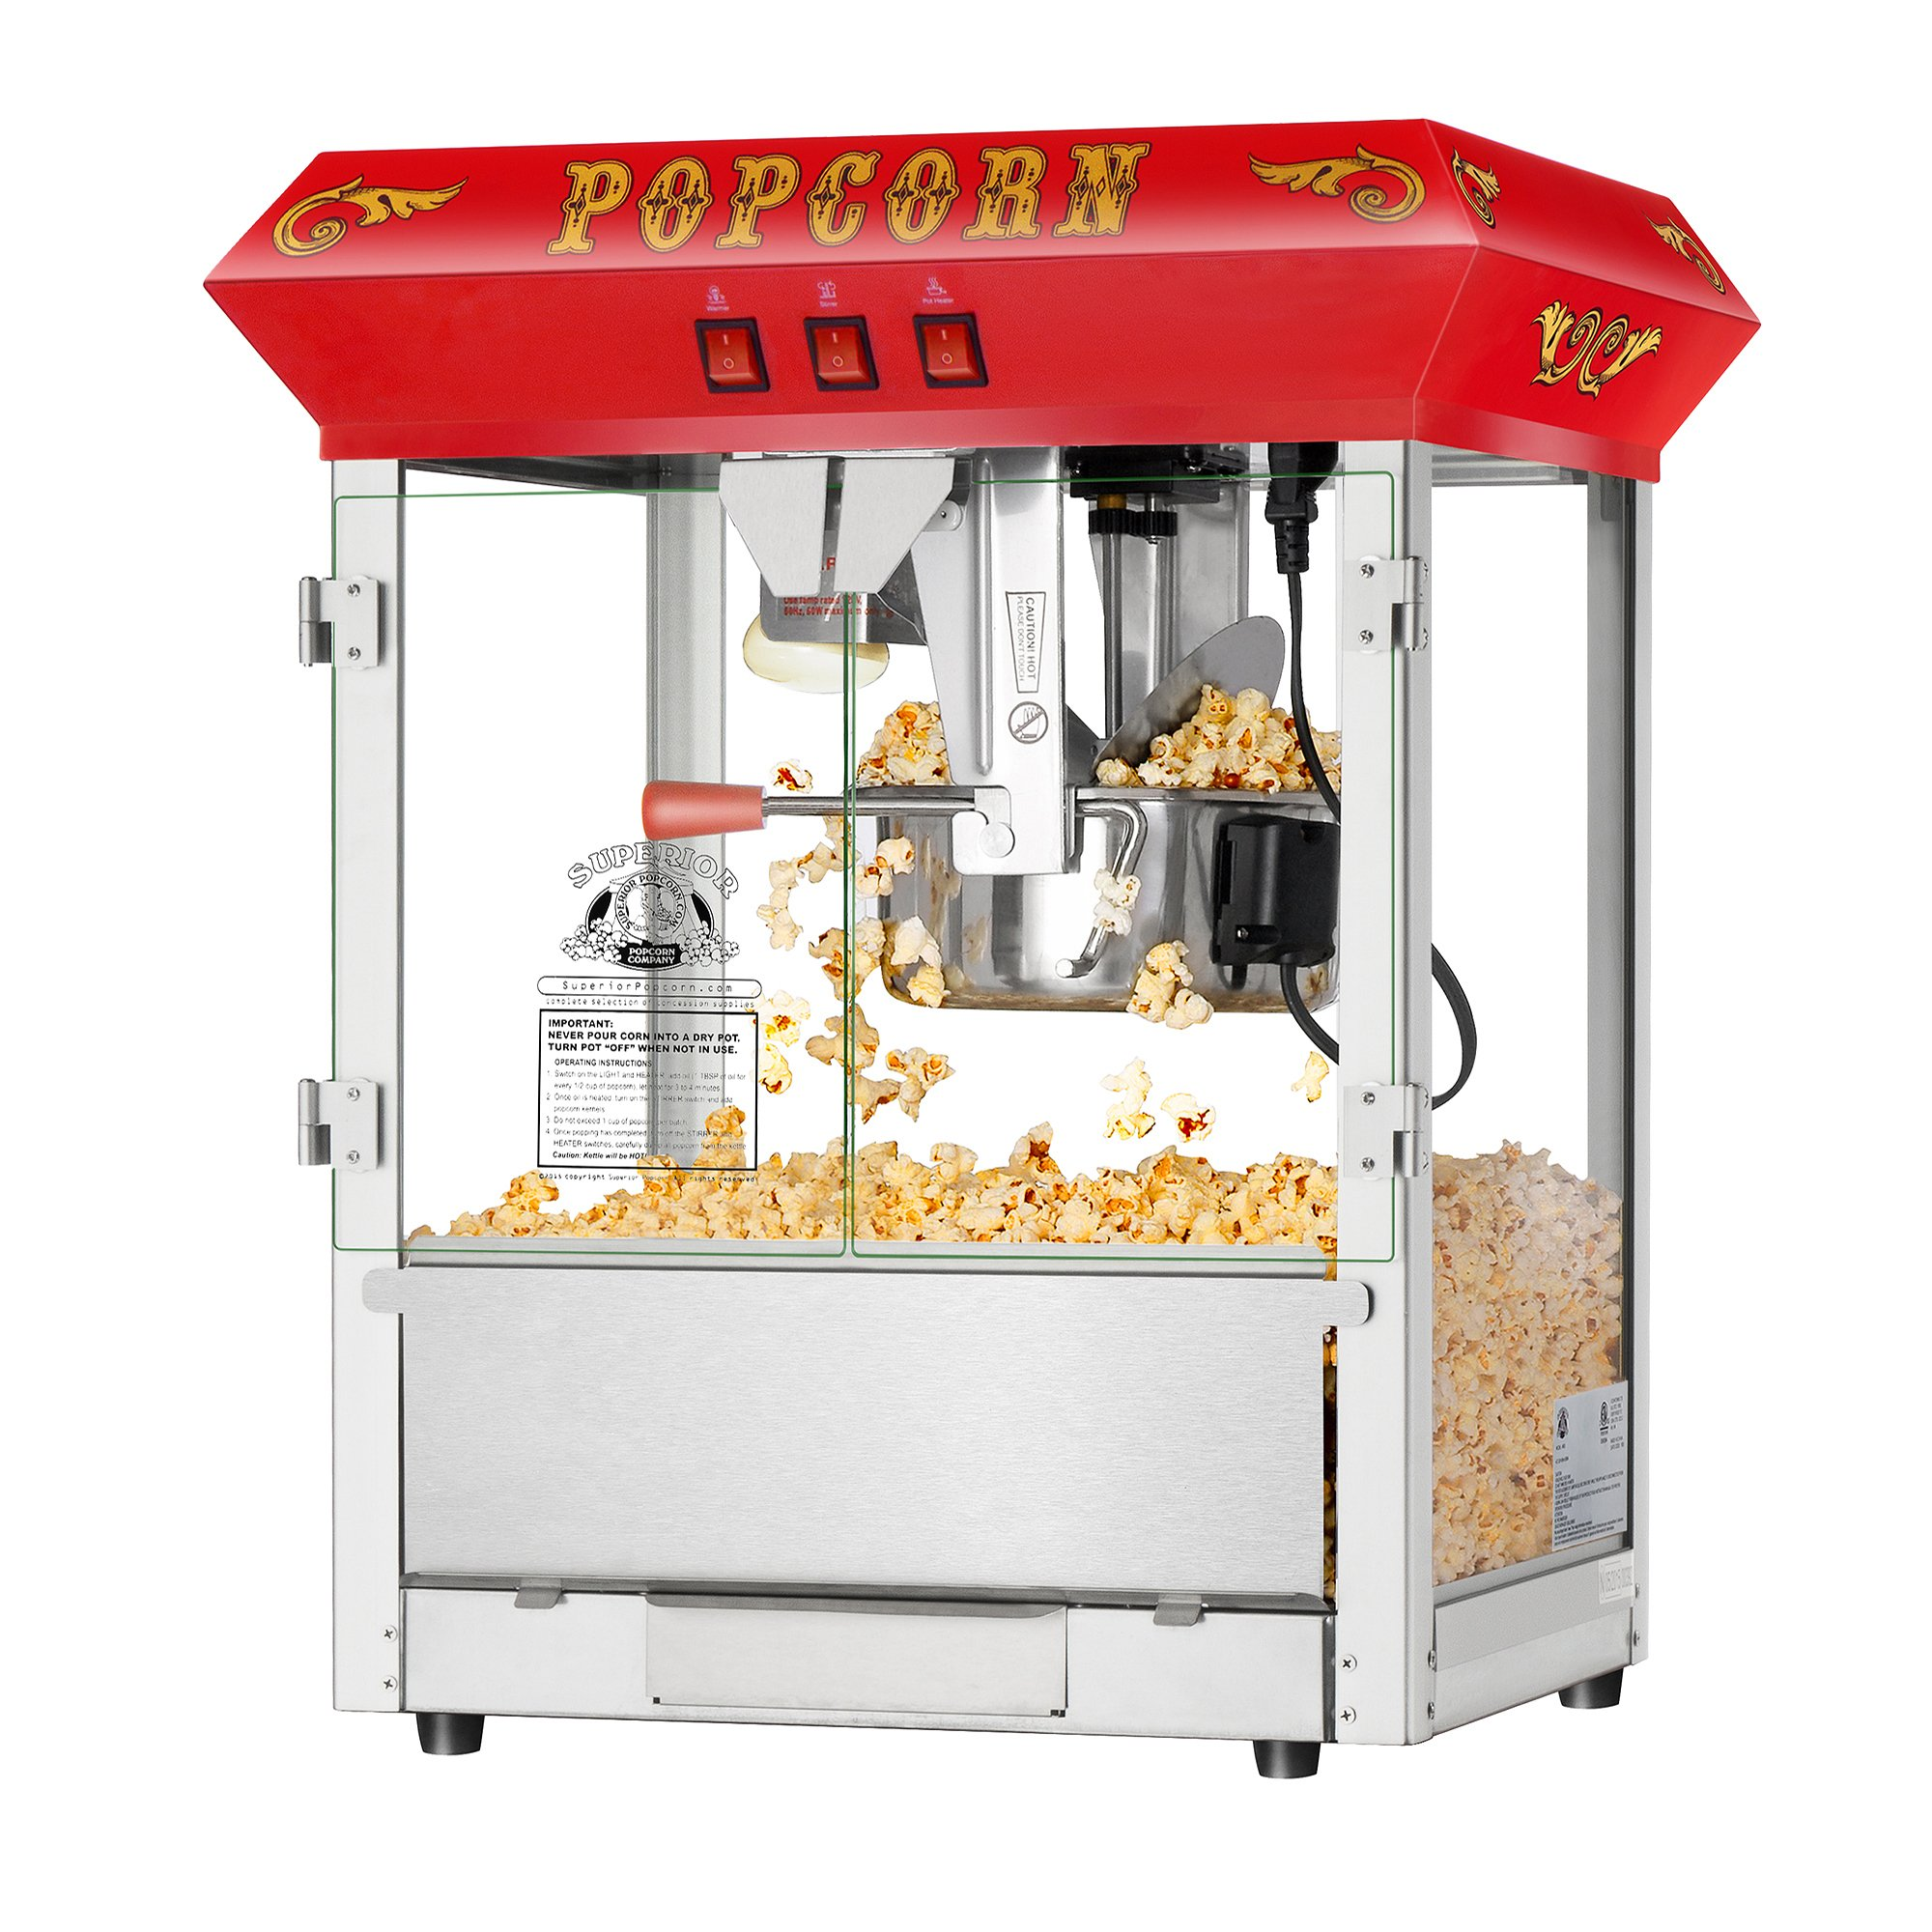 Superior Popcorn Company 4625 Hot and Fresh Countertop Style Popper Machine, 8 oz, Red